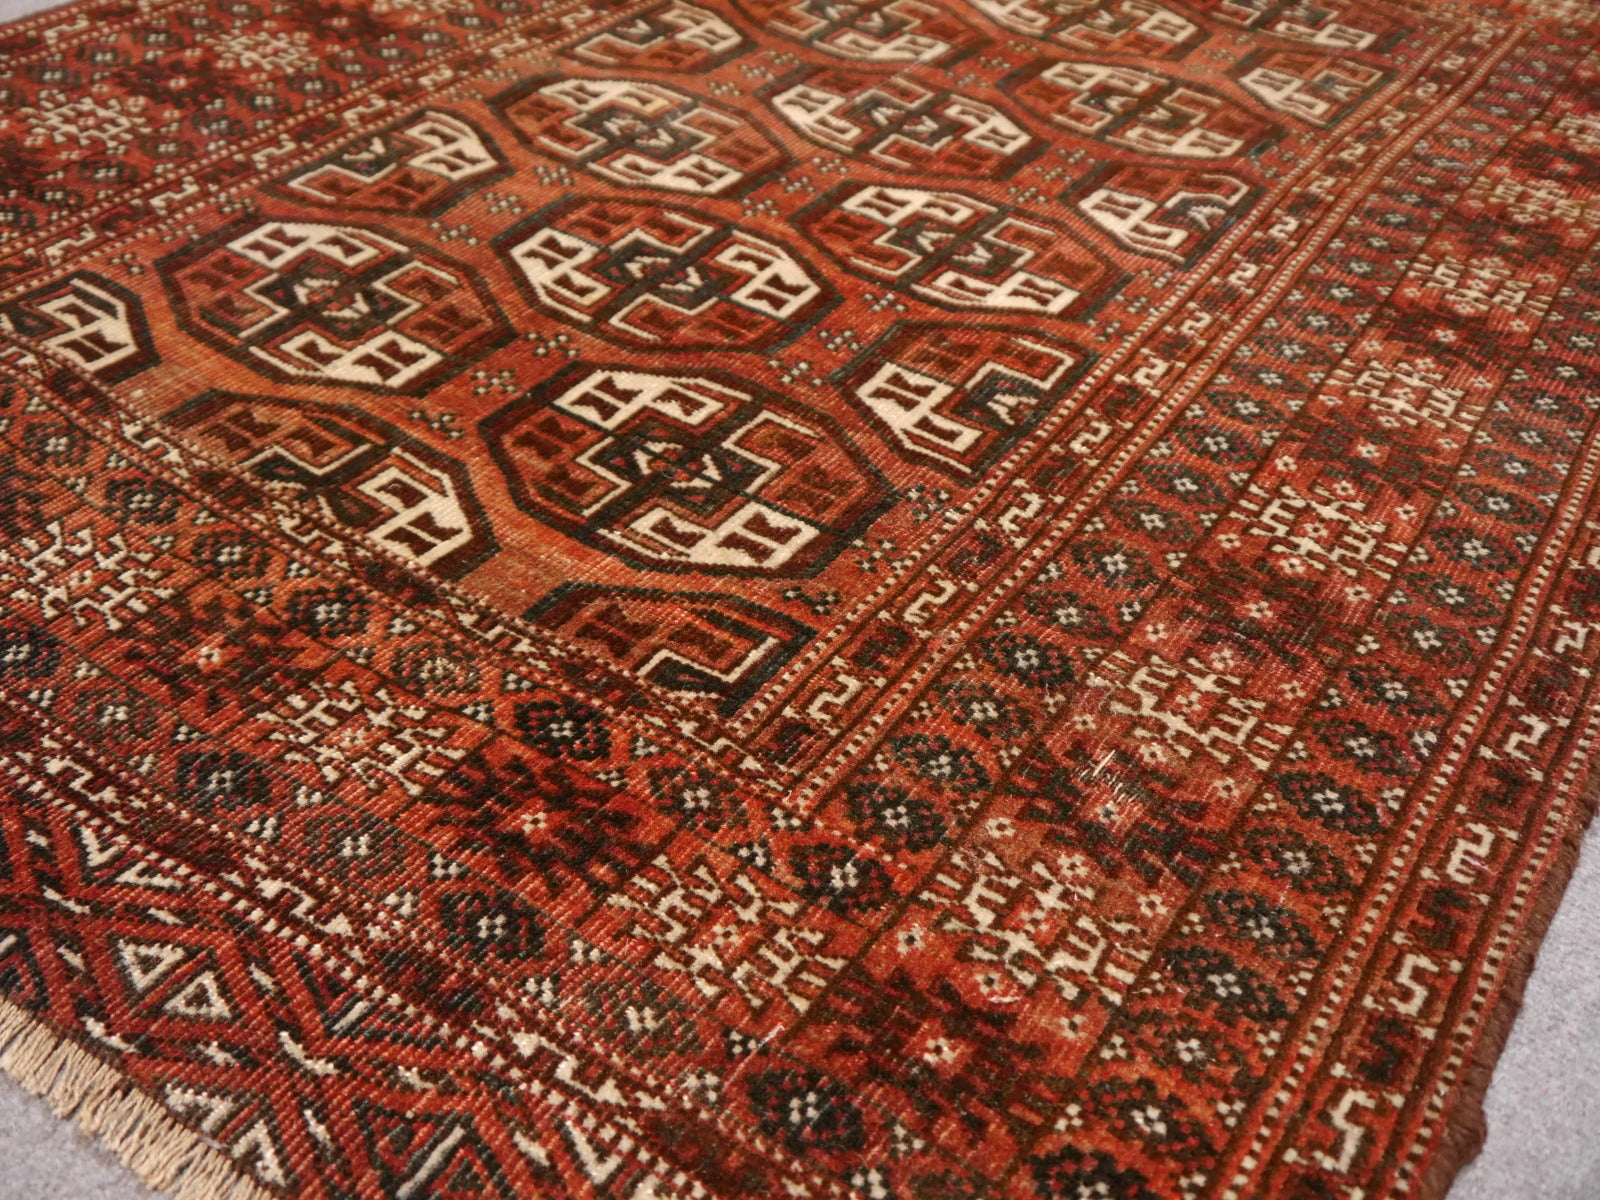 tribal rugs man gallery product rug serkoy